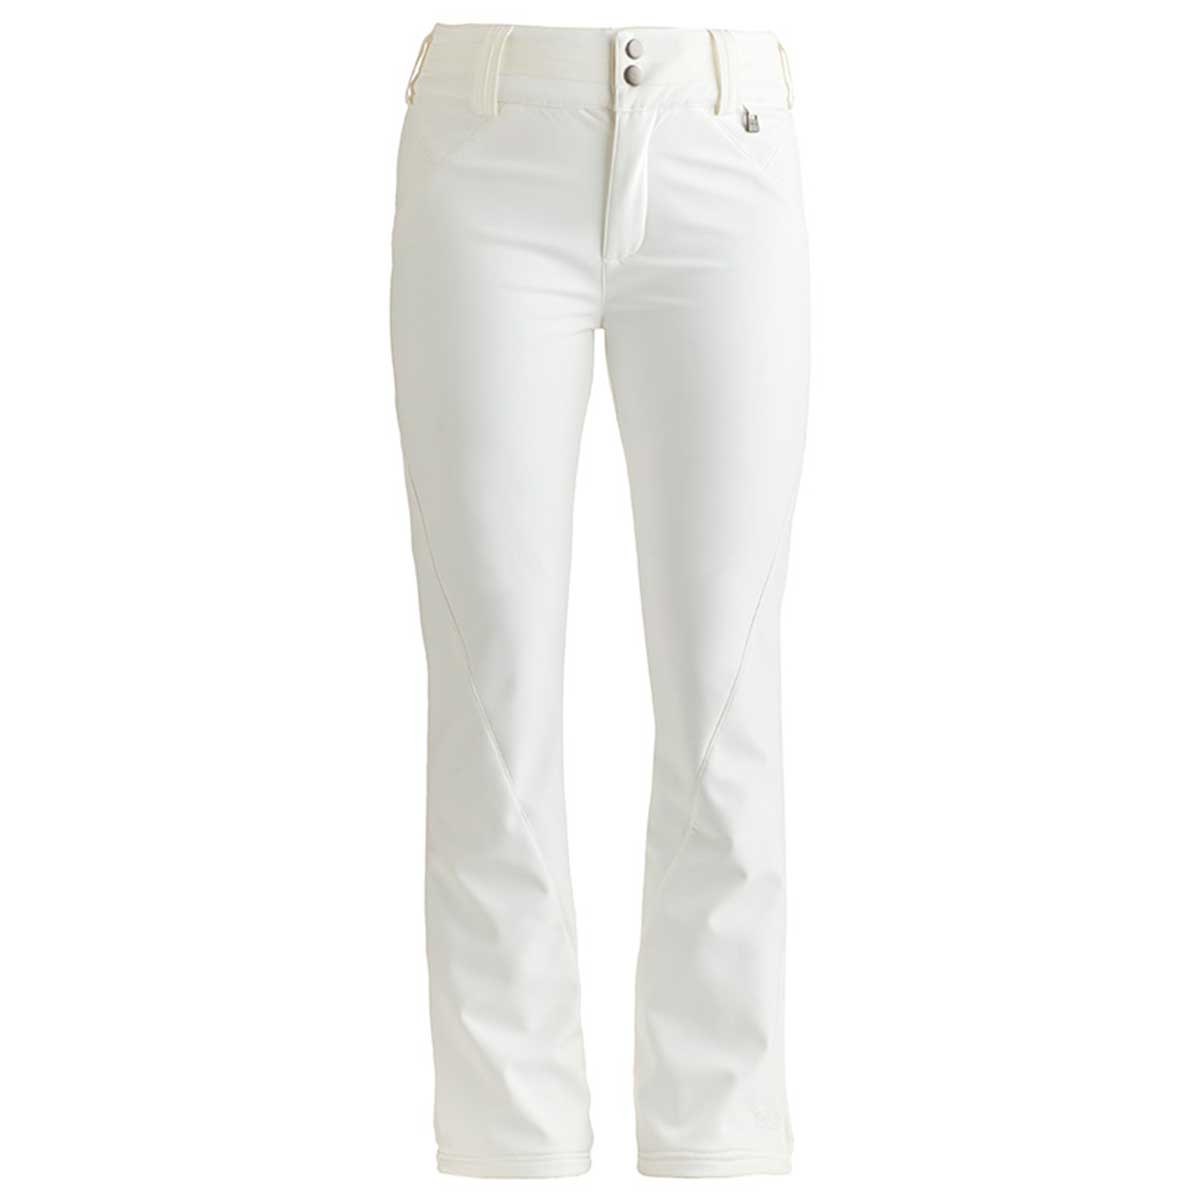 NILS Betty pant in White